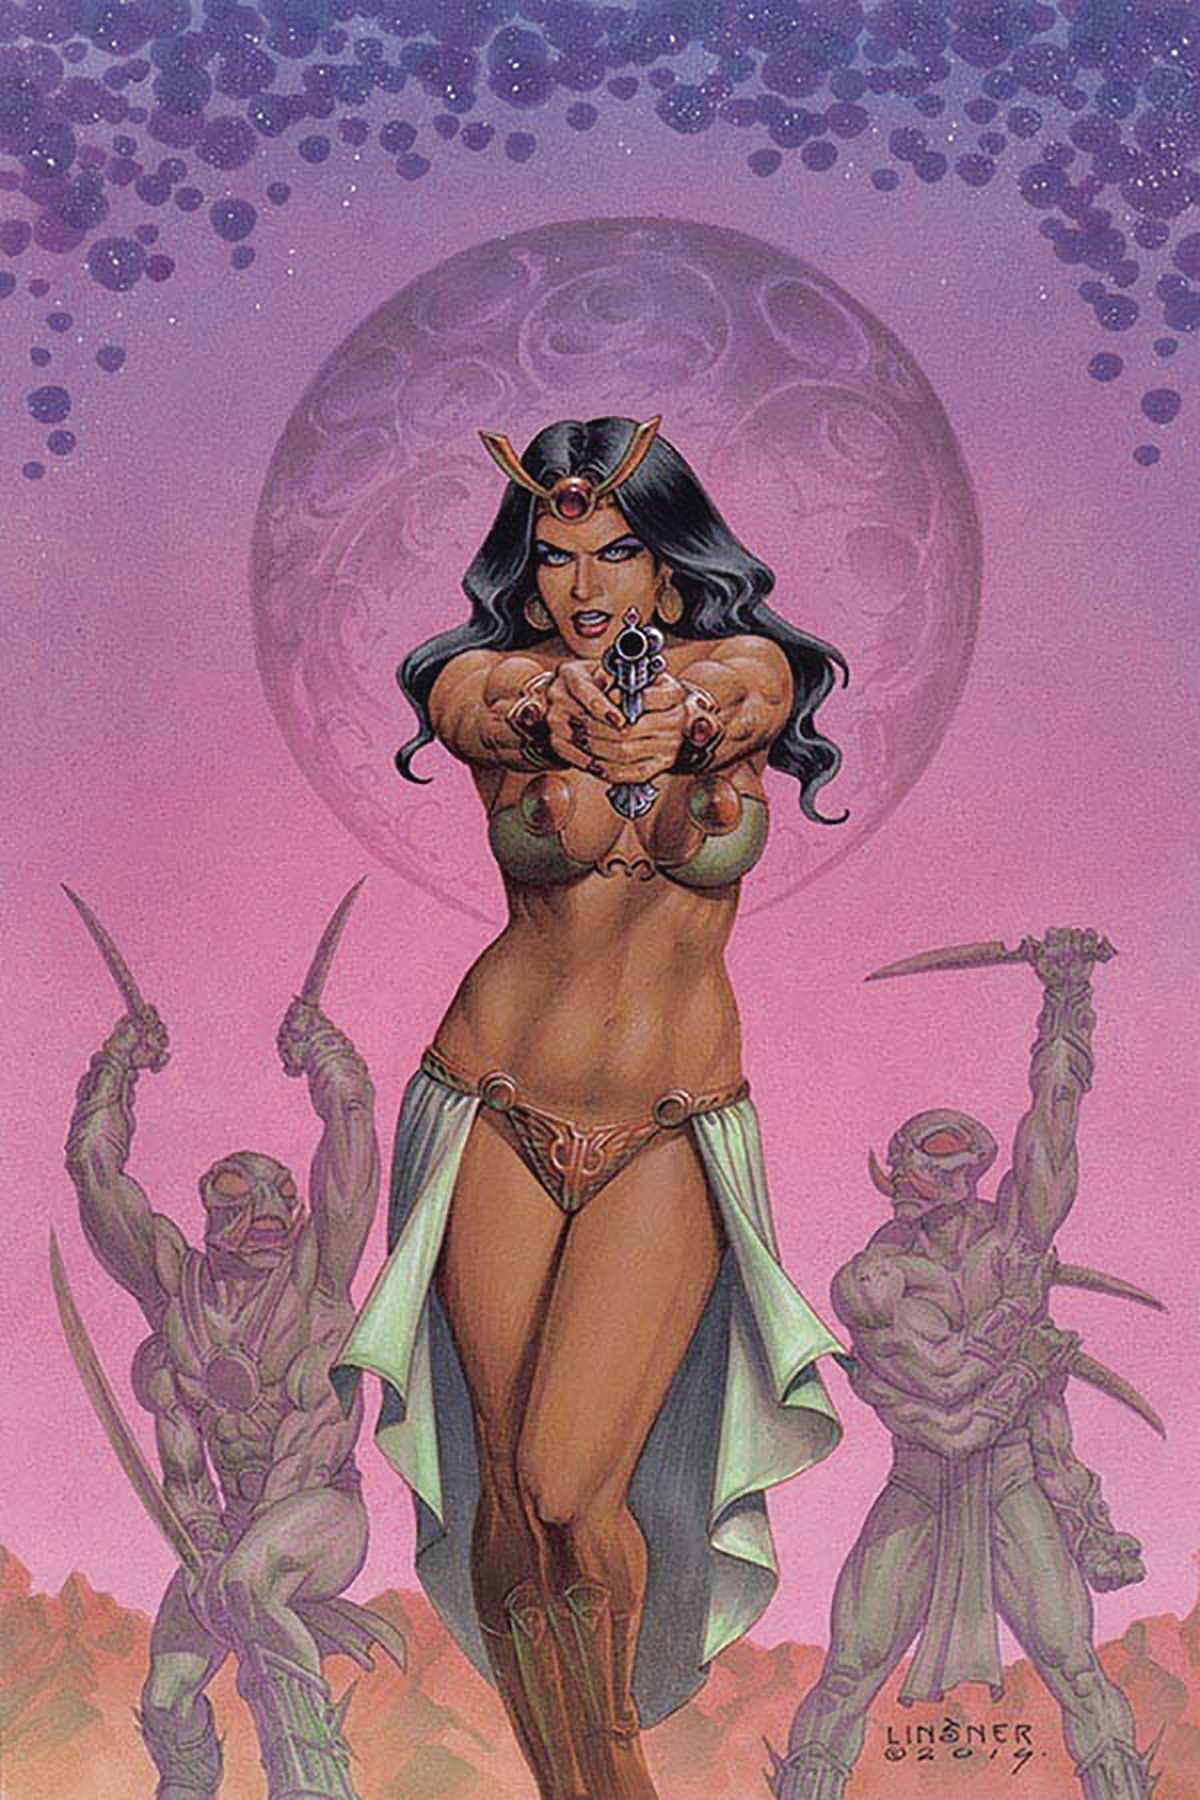 DEJAH THORIS (2019) #2 LINSNER LTD VIRGIN CVR